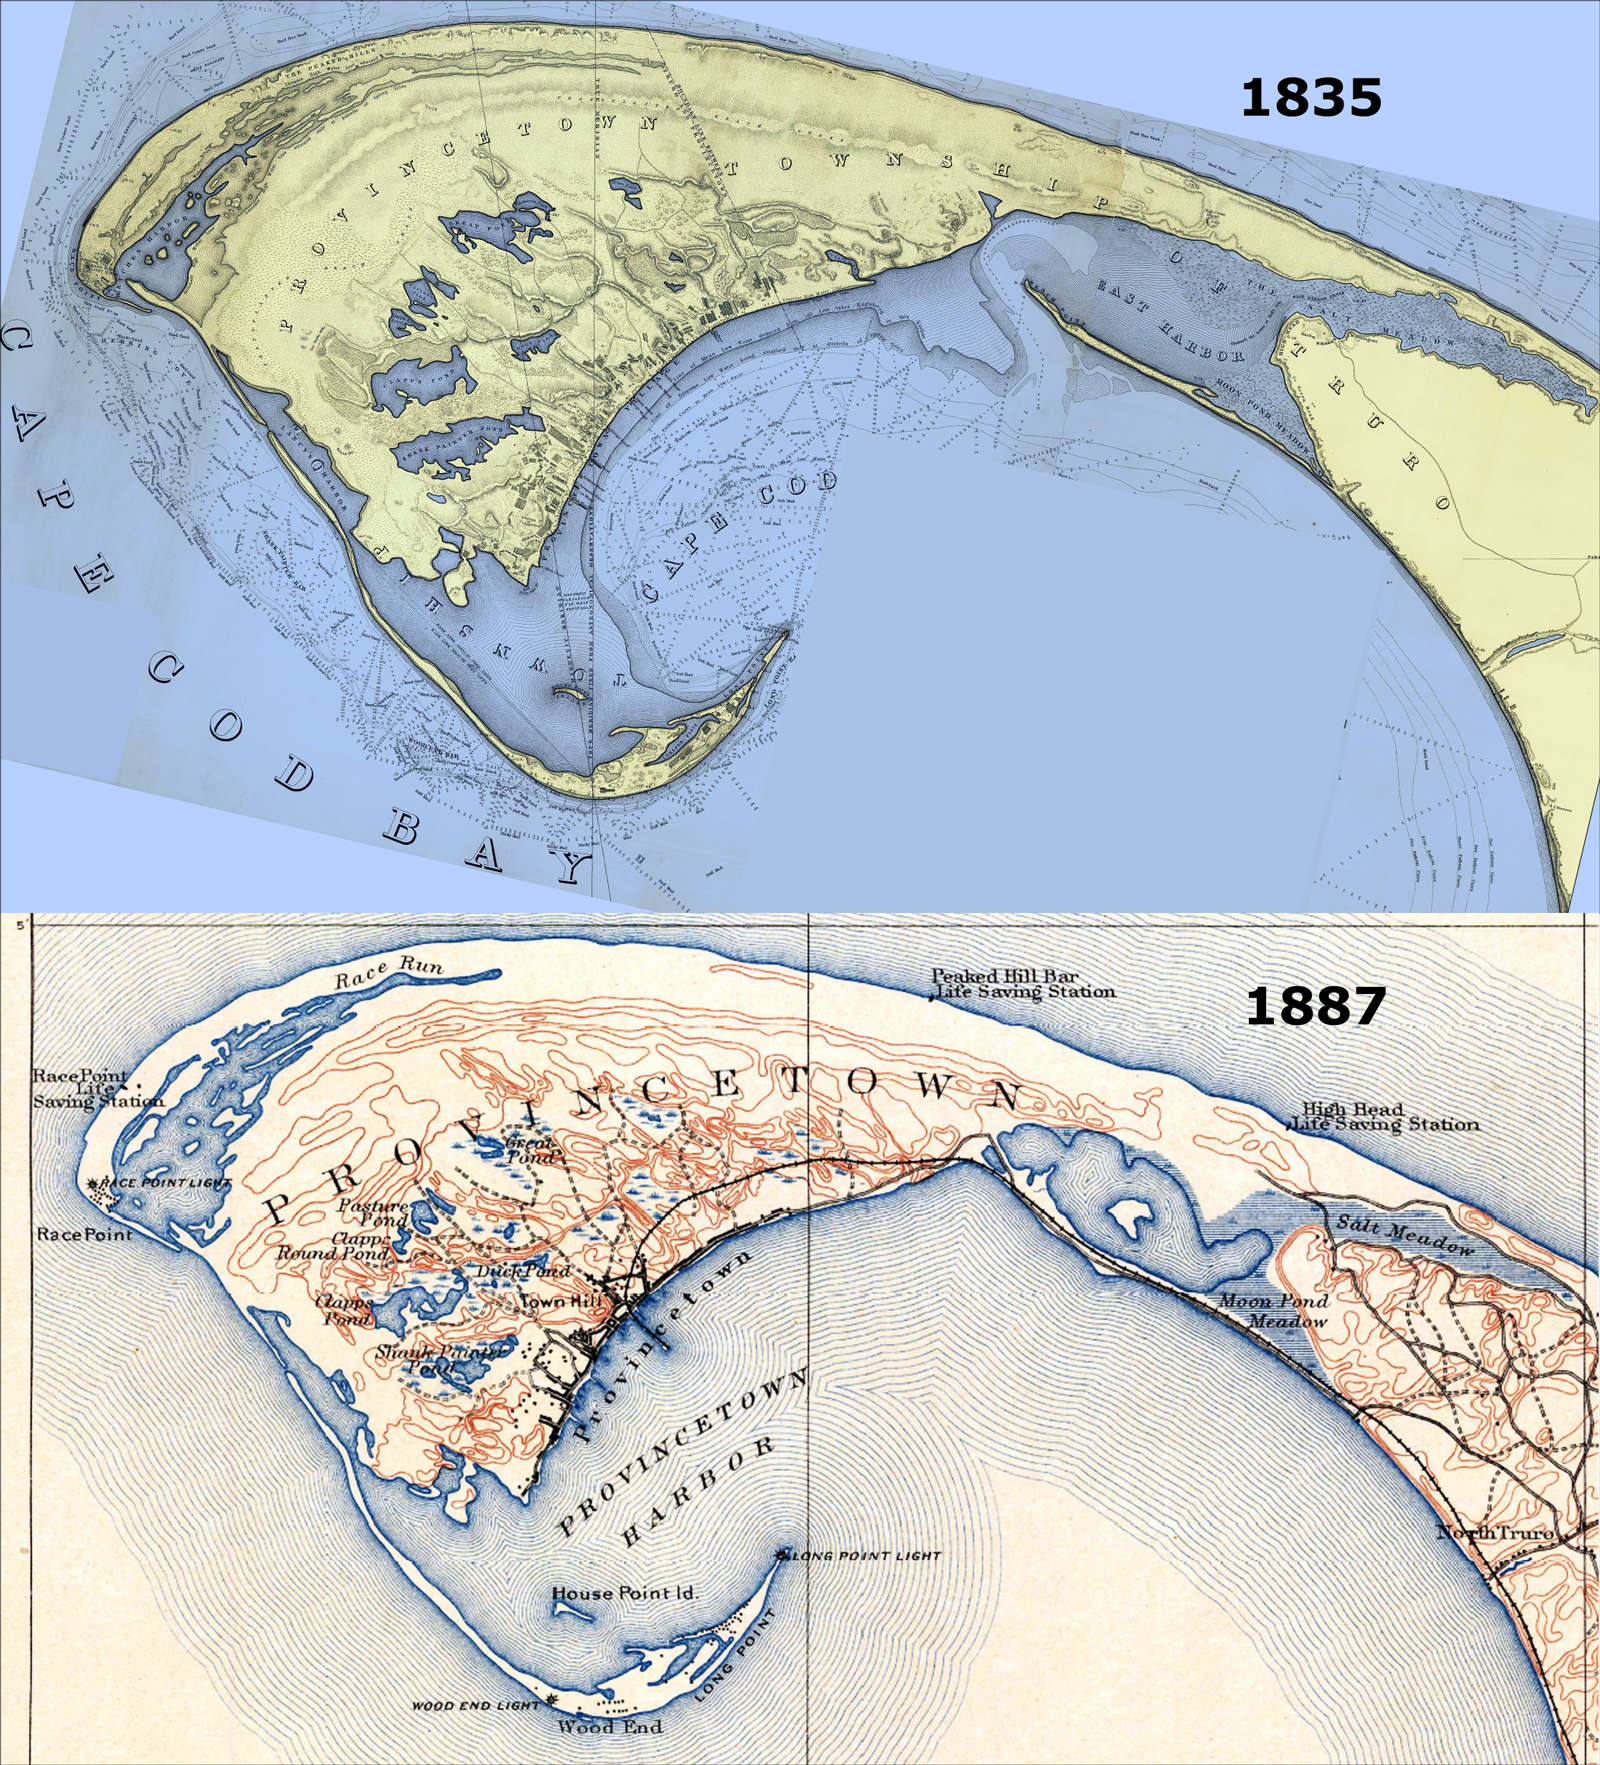 Two maps from 1835 and 1887 show the tip of Cape Cod before and after the East Harbor was sealed to build a railroad line to Provincetown.